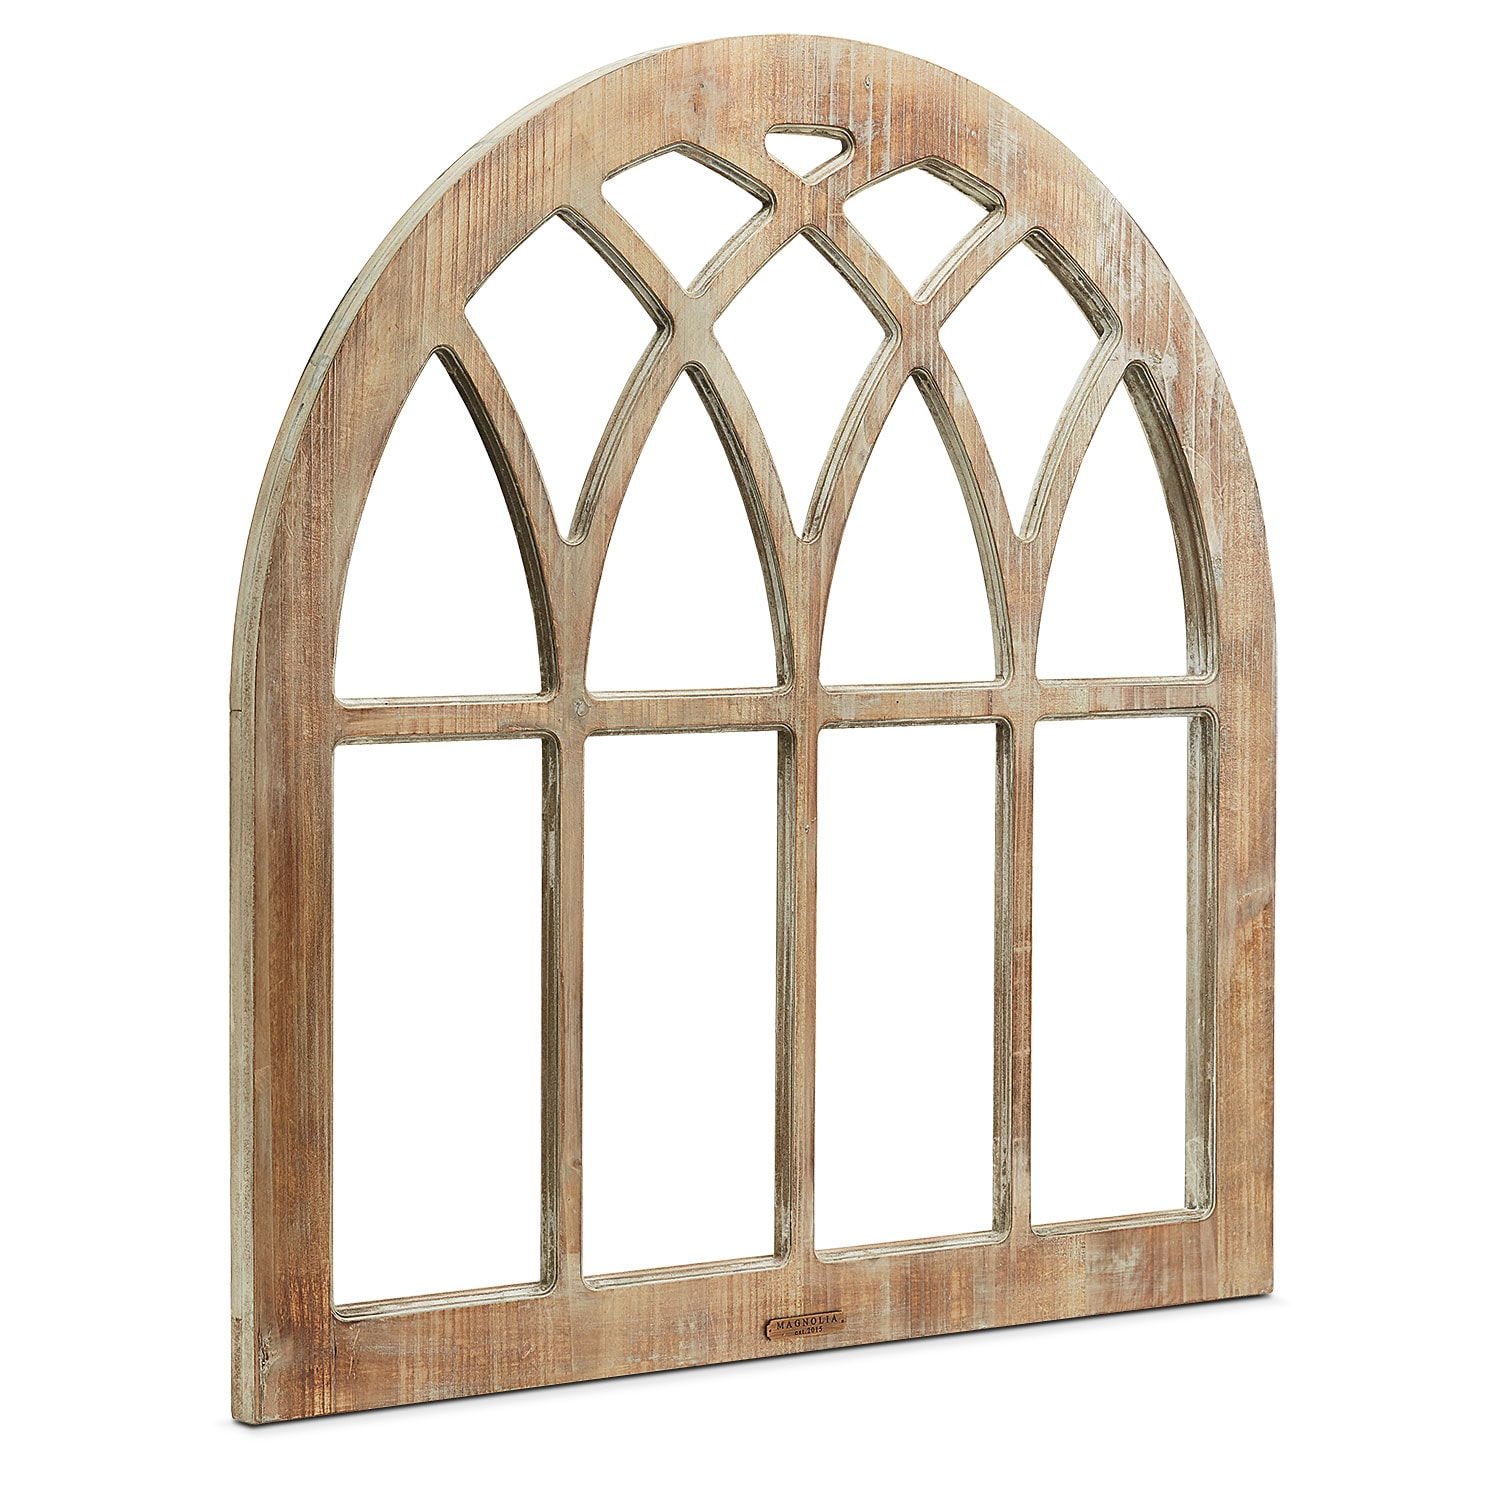 Home Accessories - Cathedral Window Frame Wall Hanging